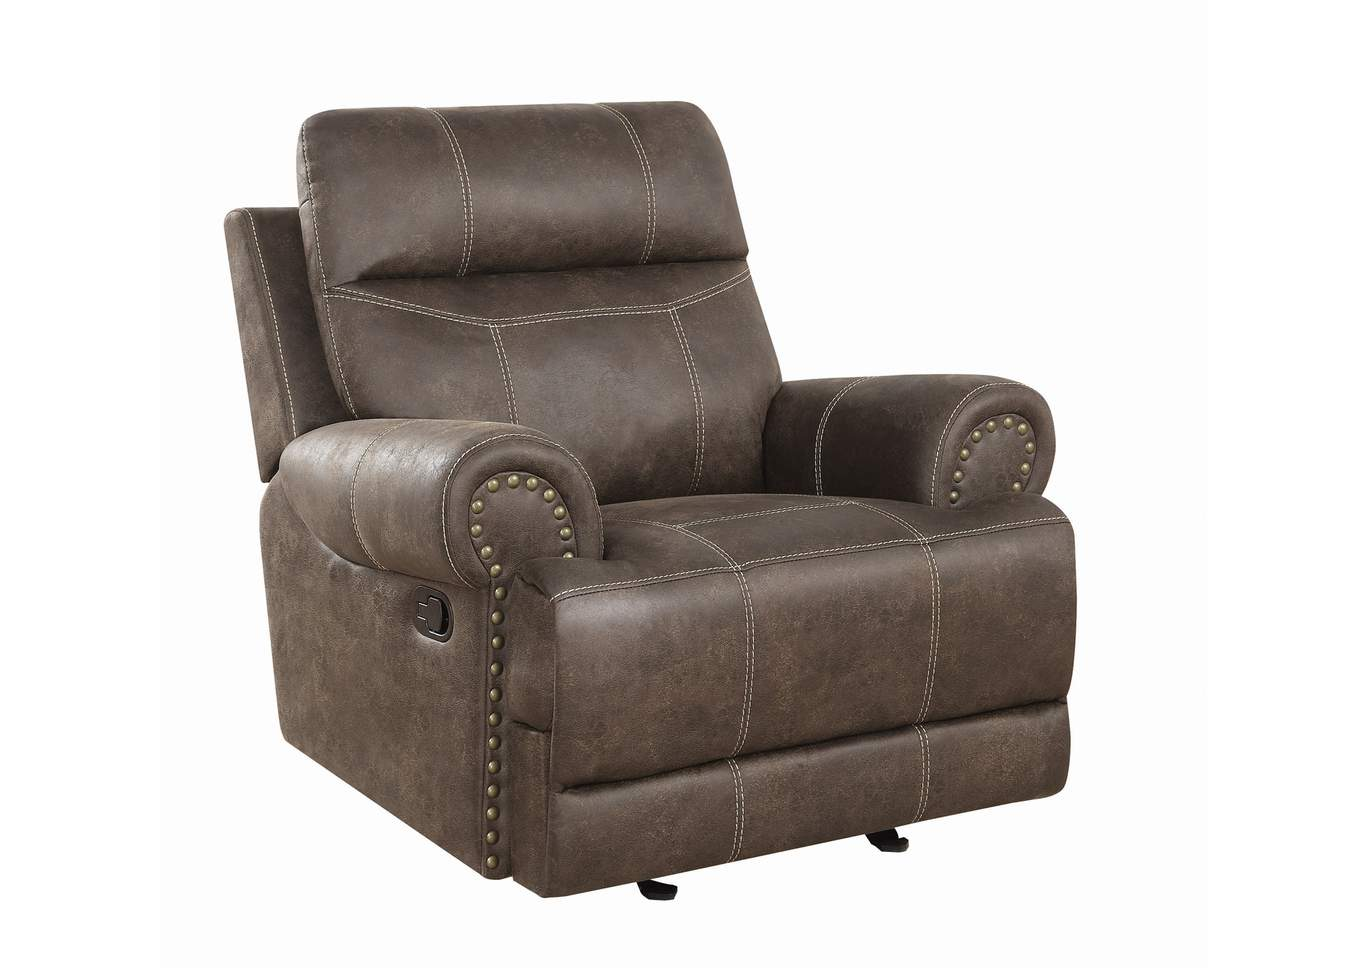 Pine Cone Glider Recliner,Coaster Furniture